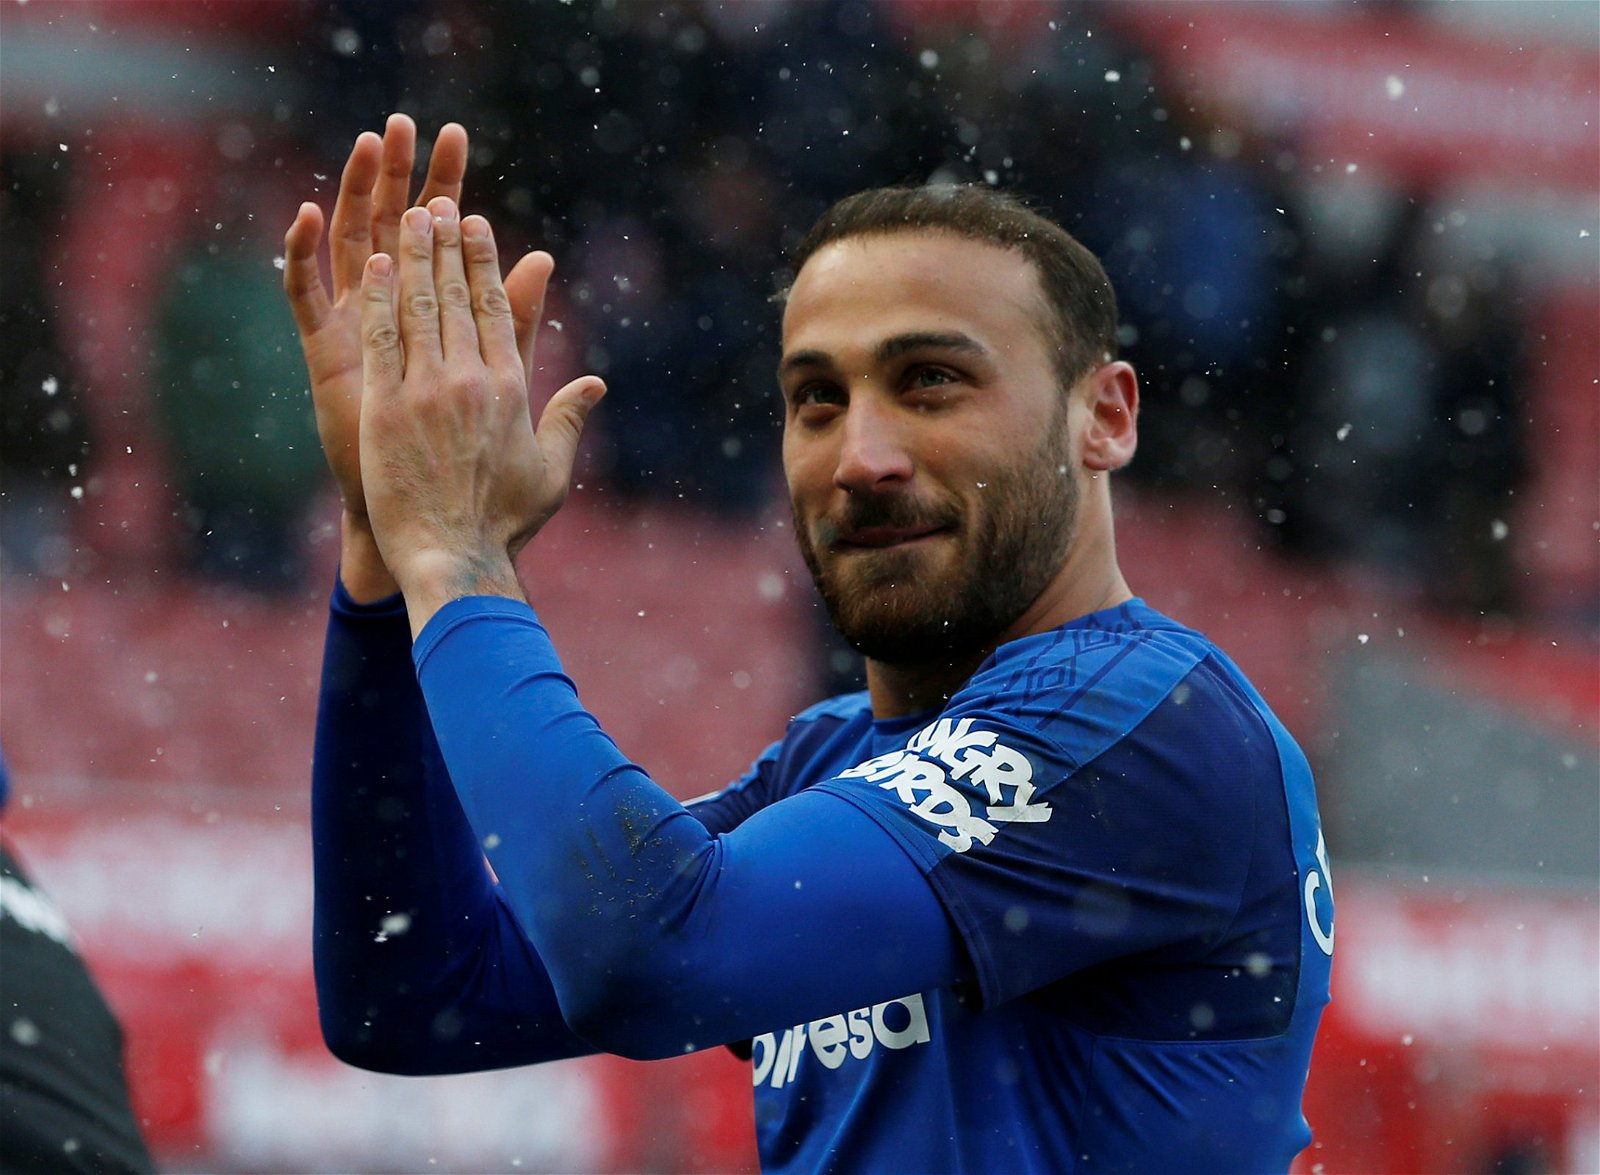 Cenk Tosun applauds the Everton fans following the team's win over Stoke City